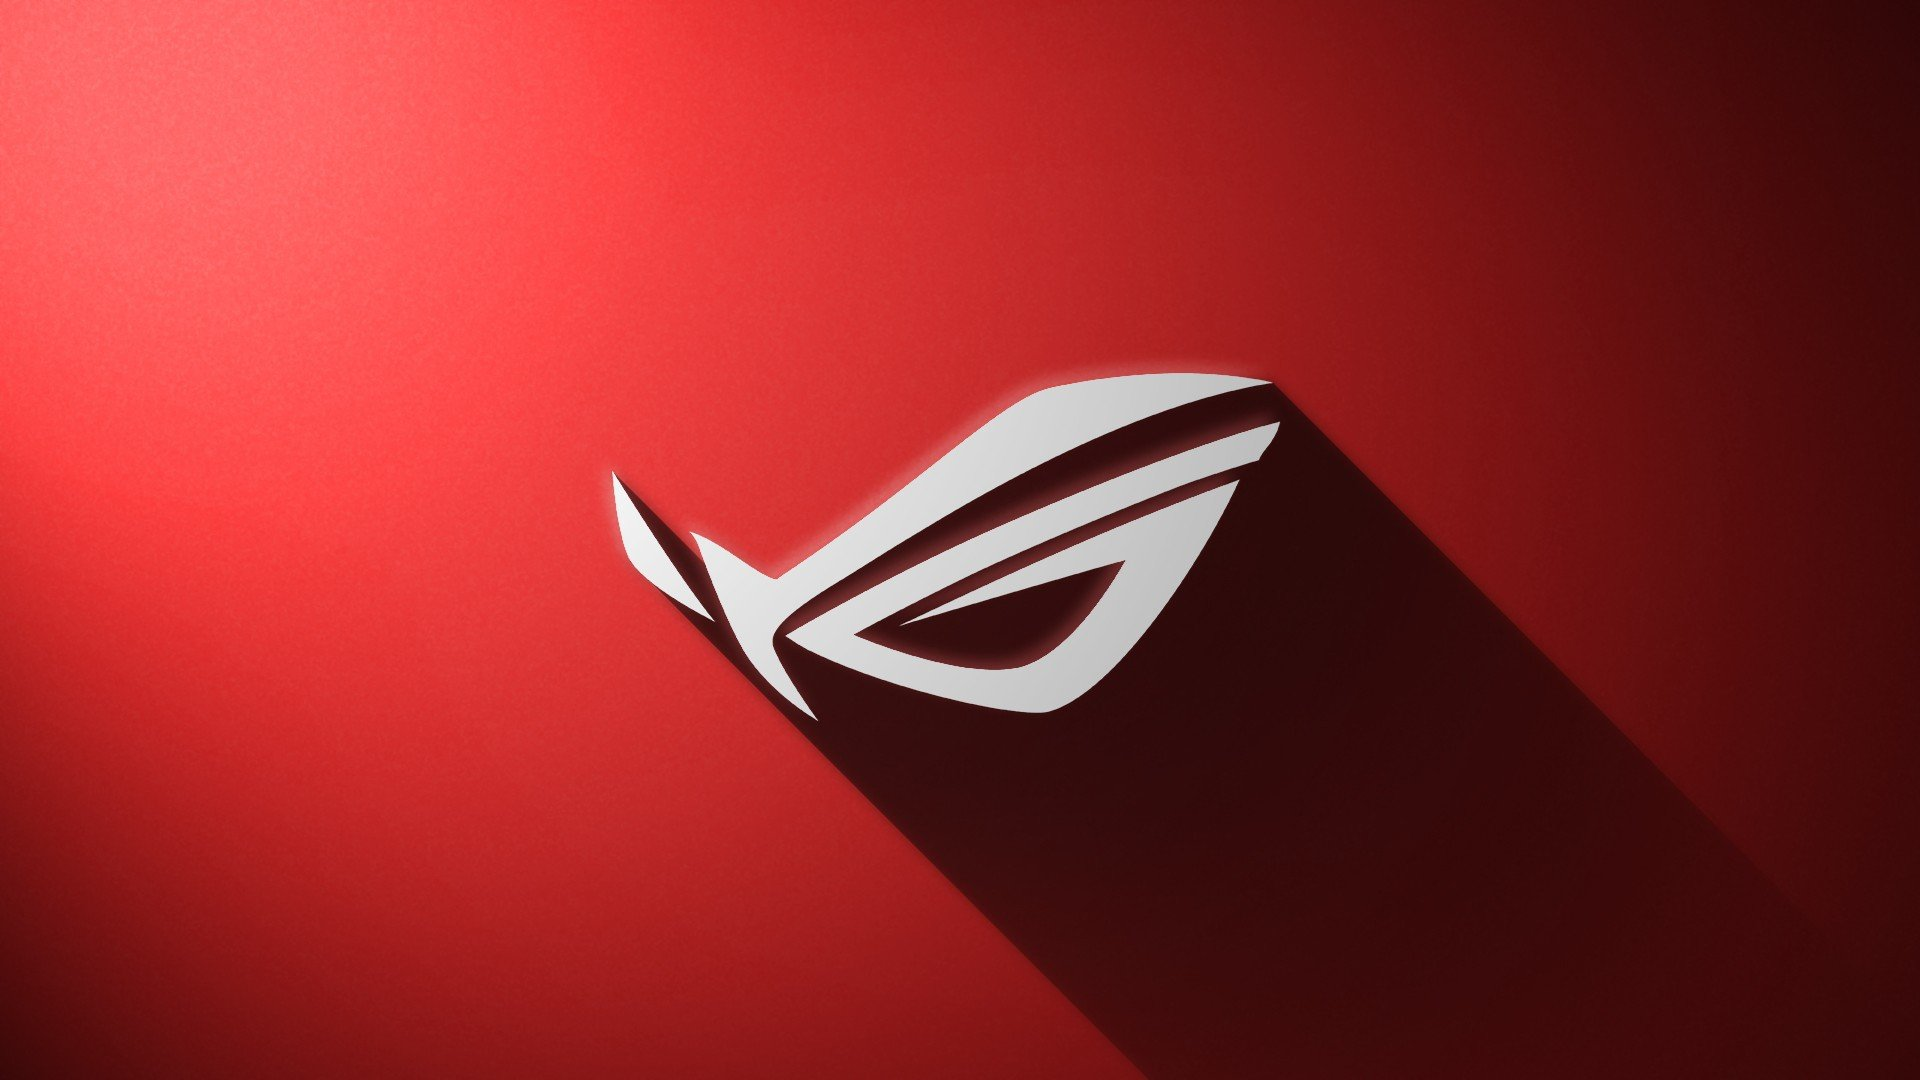 Republic of gamers logo shadow hd wallpapers desktop - Asus gamers republic wallpaper ...